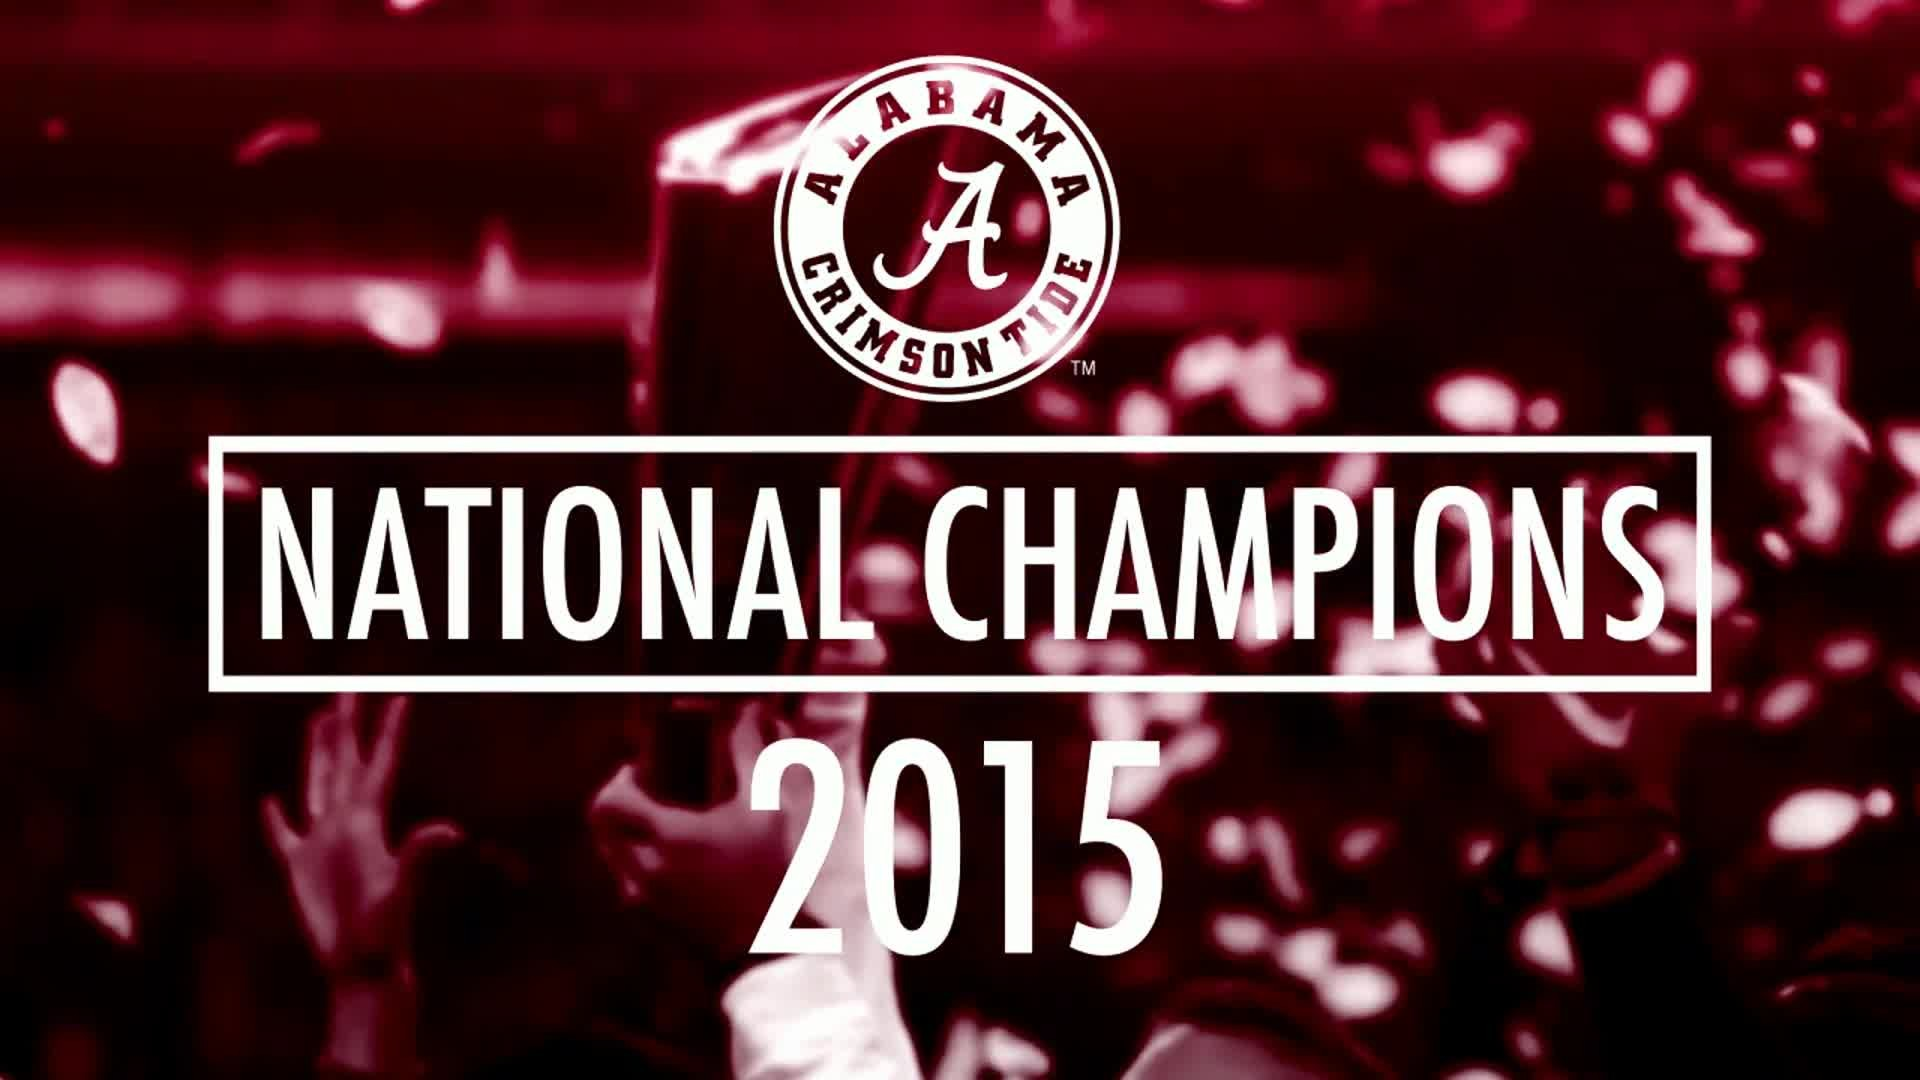 1920x1080 Alabama National Championship 2015 Wallpapers  px | NM.CP  Wallpapers - HD Wallpapers